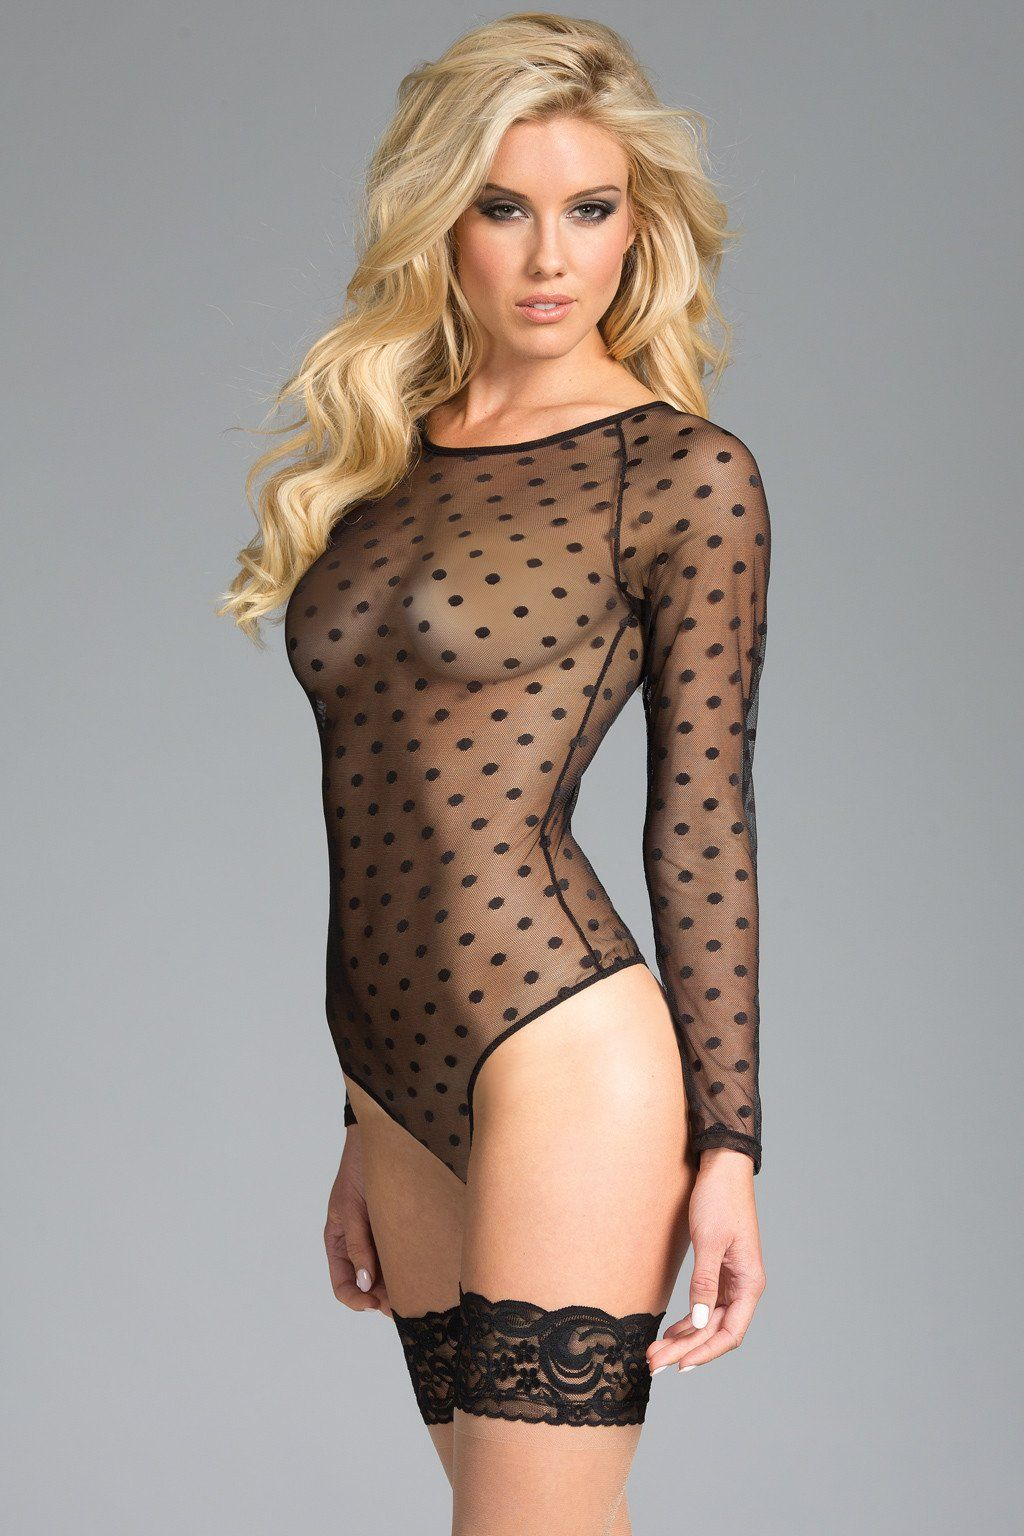 07f4538e4d Sheer long sleeve bodysuit in amazing black. Polka dot pattern. Bodysuit is  embroidered.  teddy  underwear  holidays  dressup  style  look  love